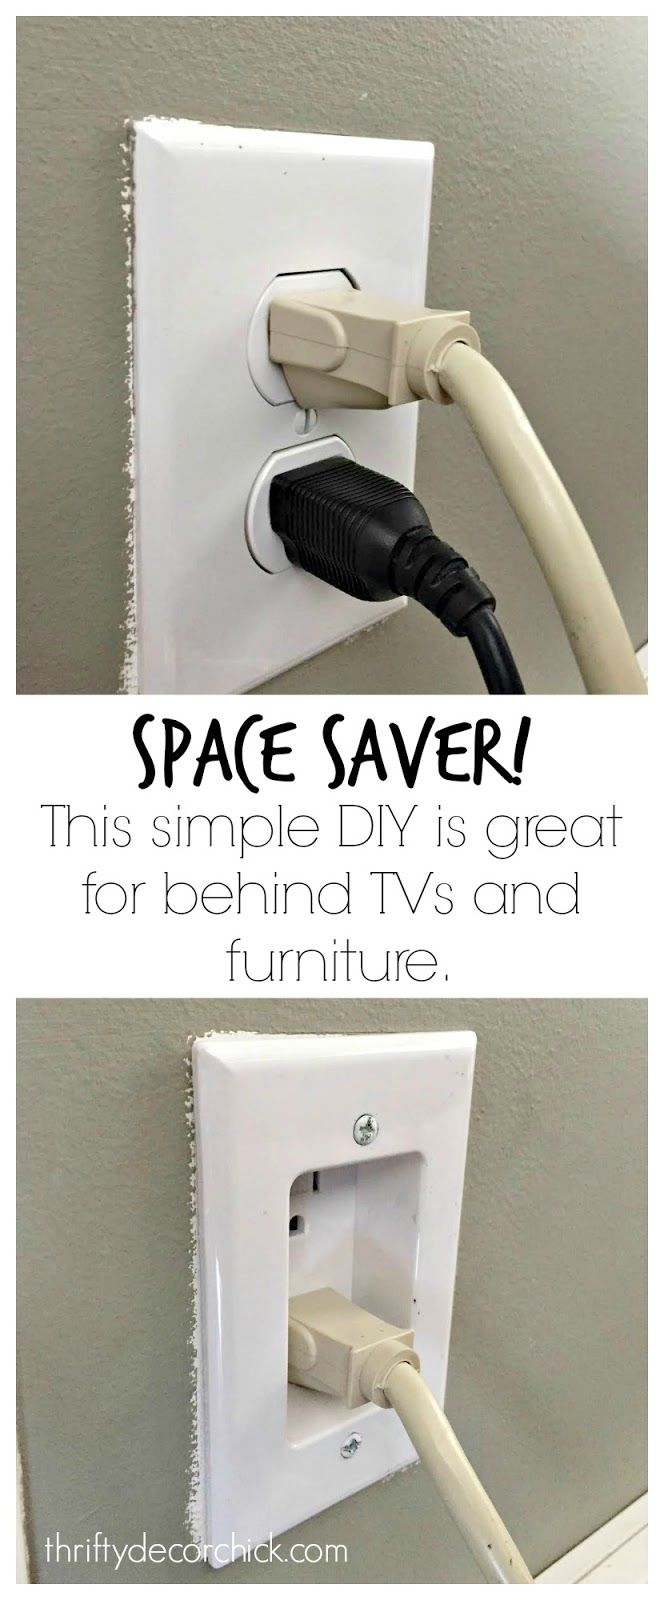 This Simple DIY Is Great For Behind TVs And Furniture!